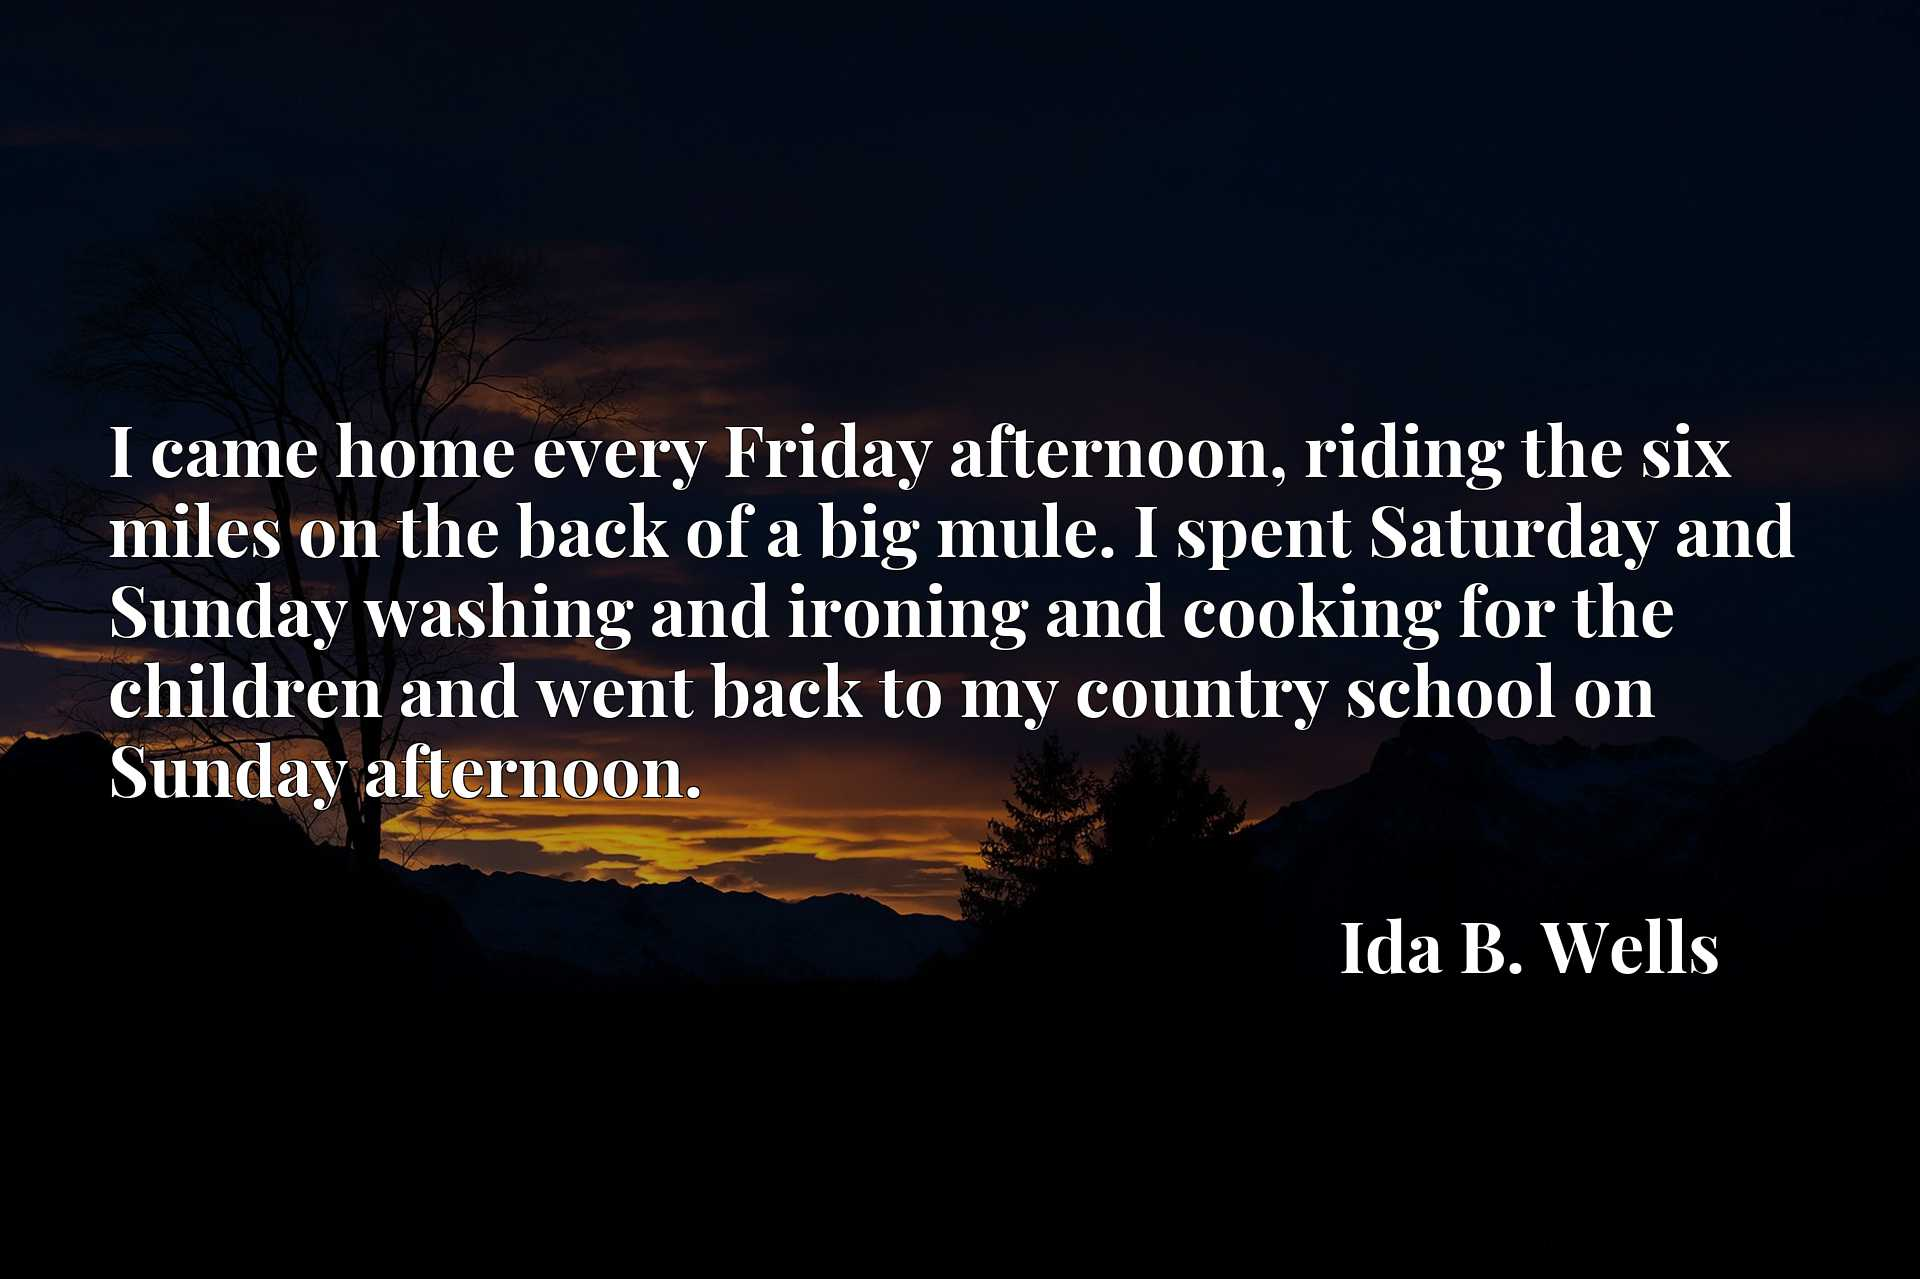 I came home every Friday afternoon, riding the six miles on the back of a big mule. I spent Saturday and Sunday washing and ironing and cooking for the children and went back to my country school on Sunday afternoon.